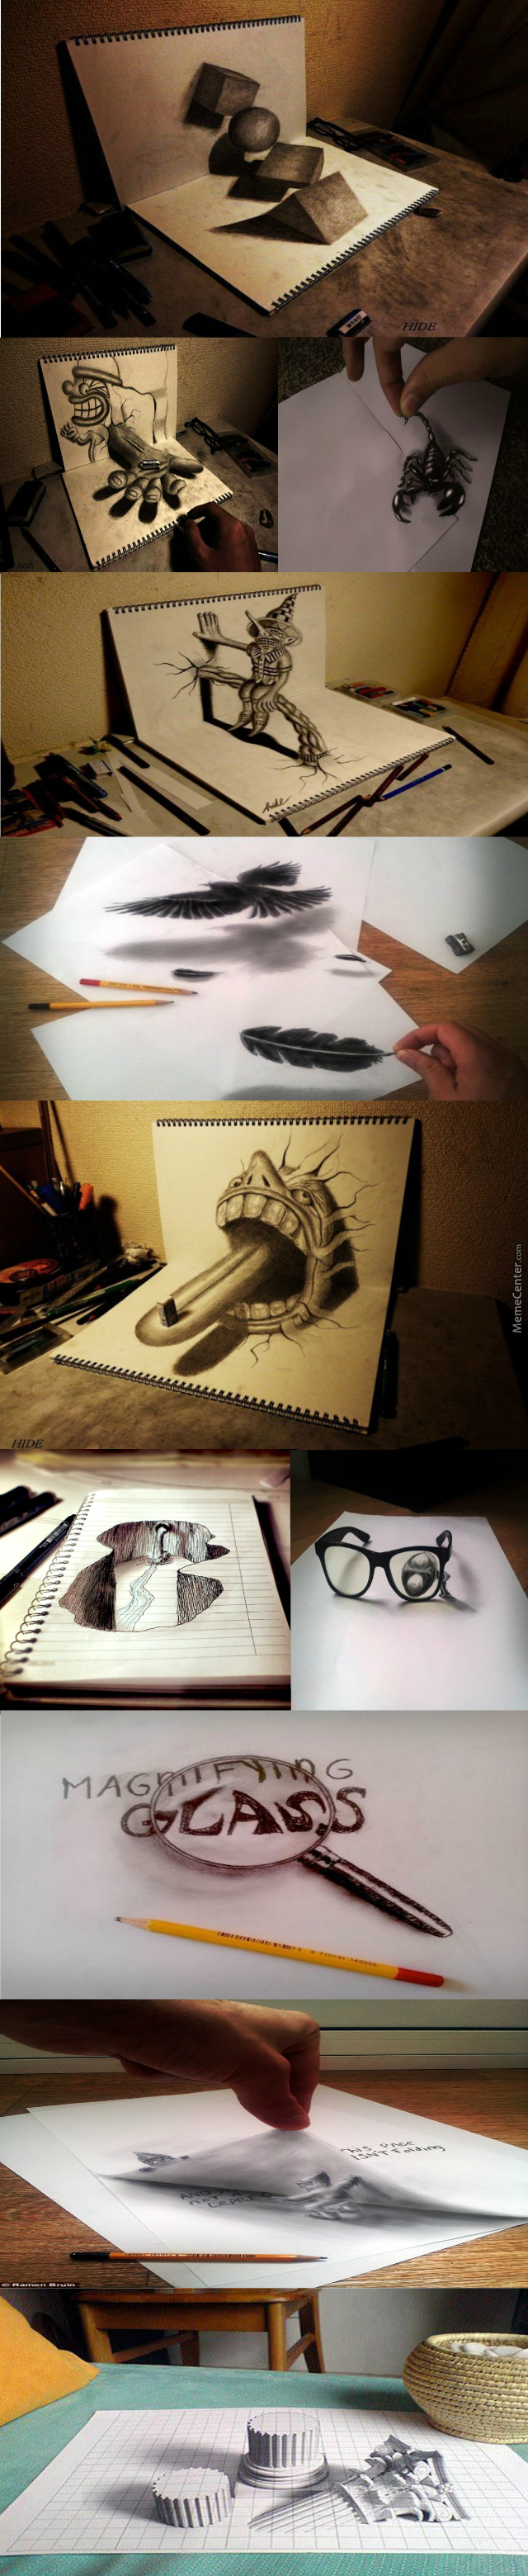 An Awesome 3D Drawing!!